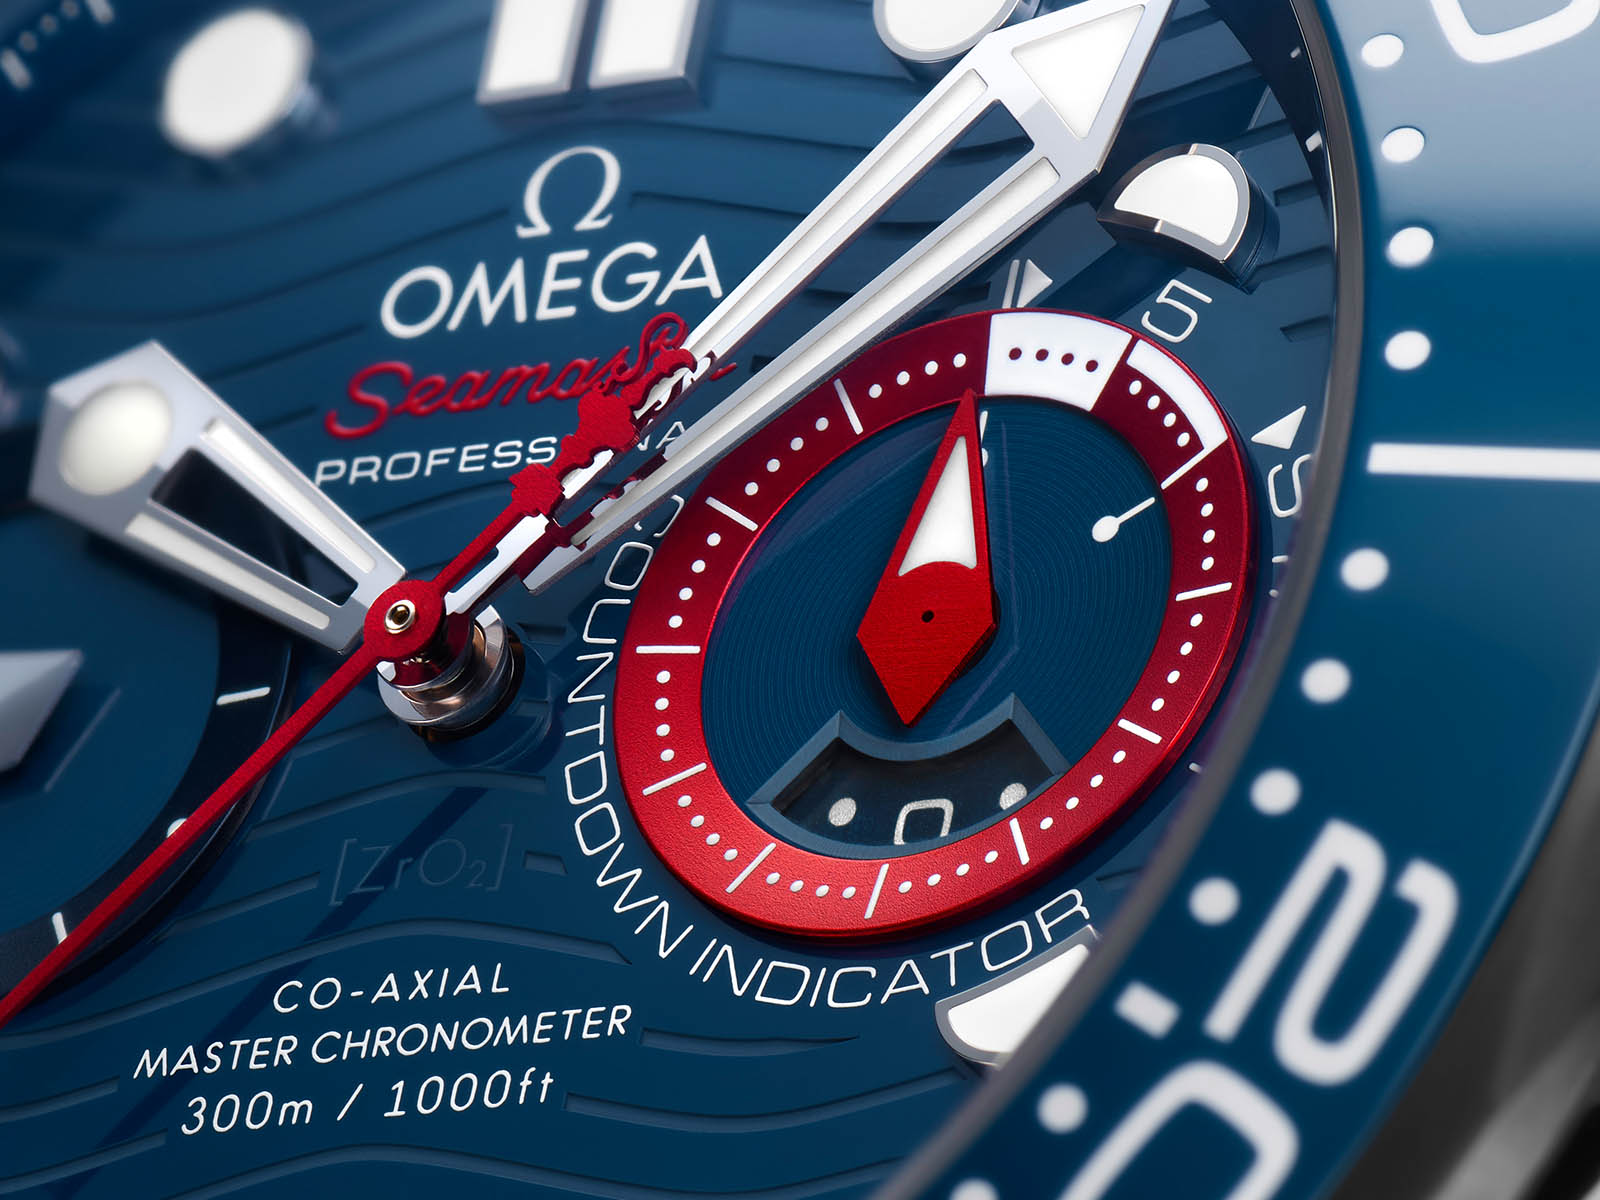 210-30-44-51-03-002-omega-seamaster-diver-300m-america-s-cup-chronograph-5.jpg